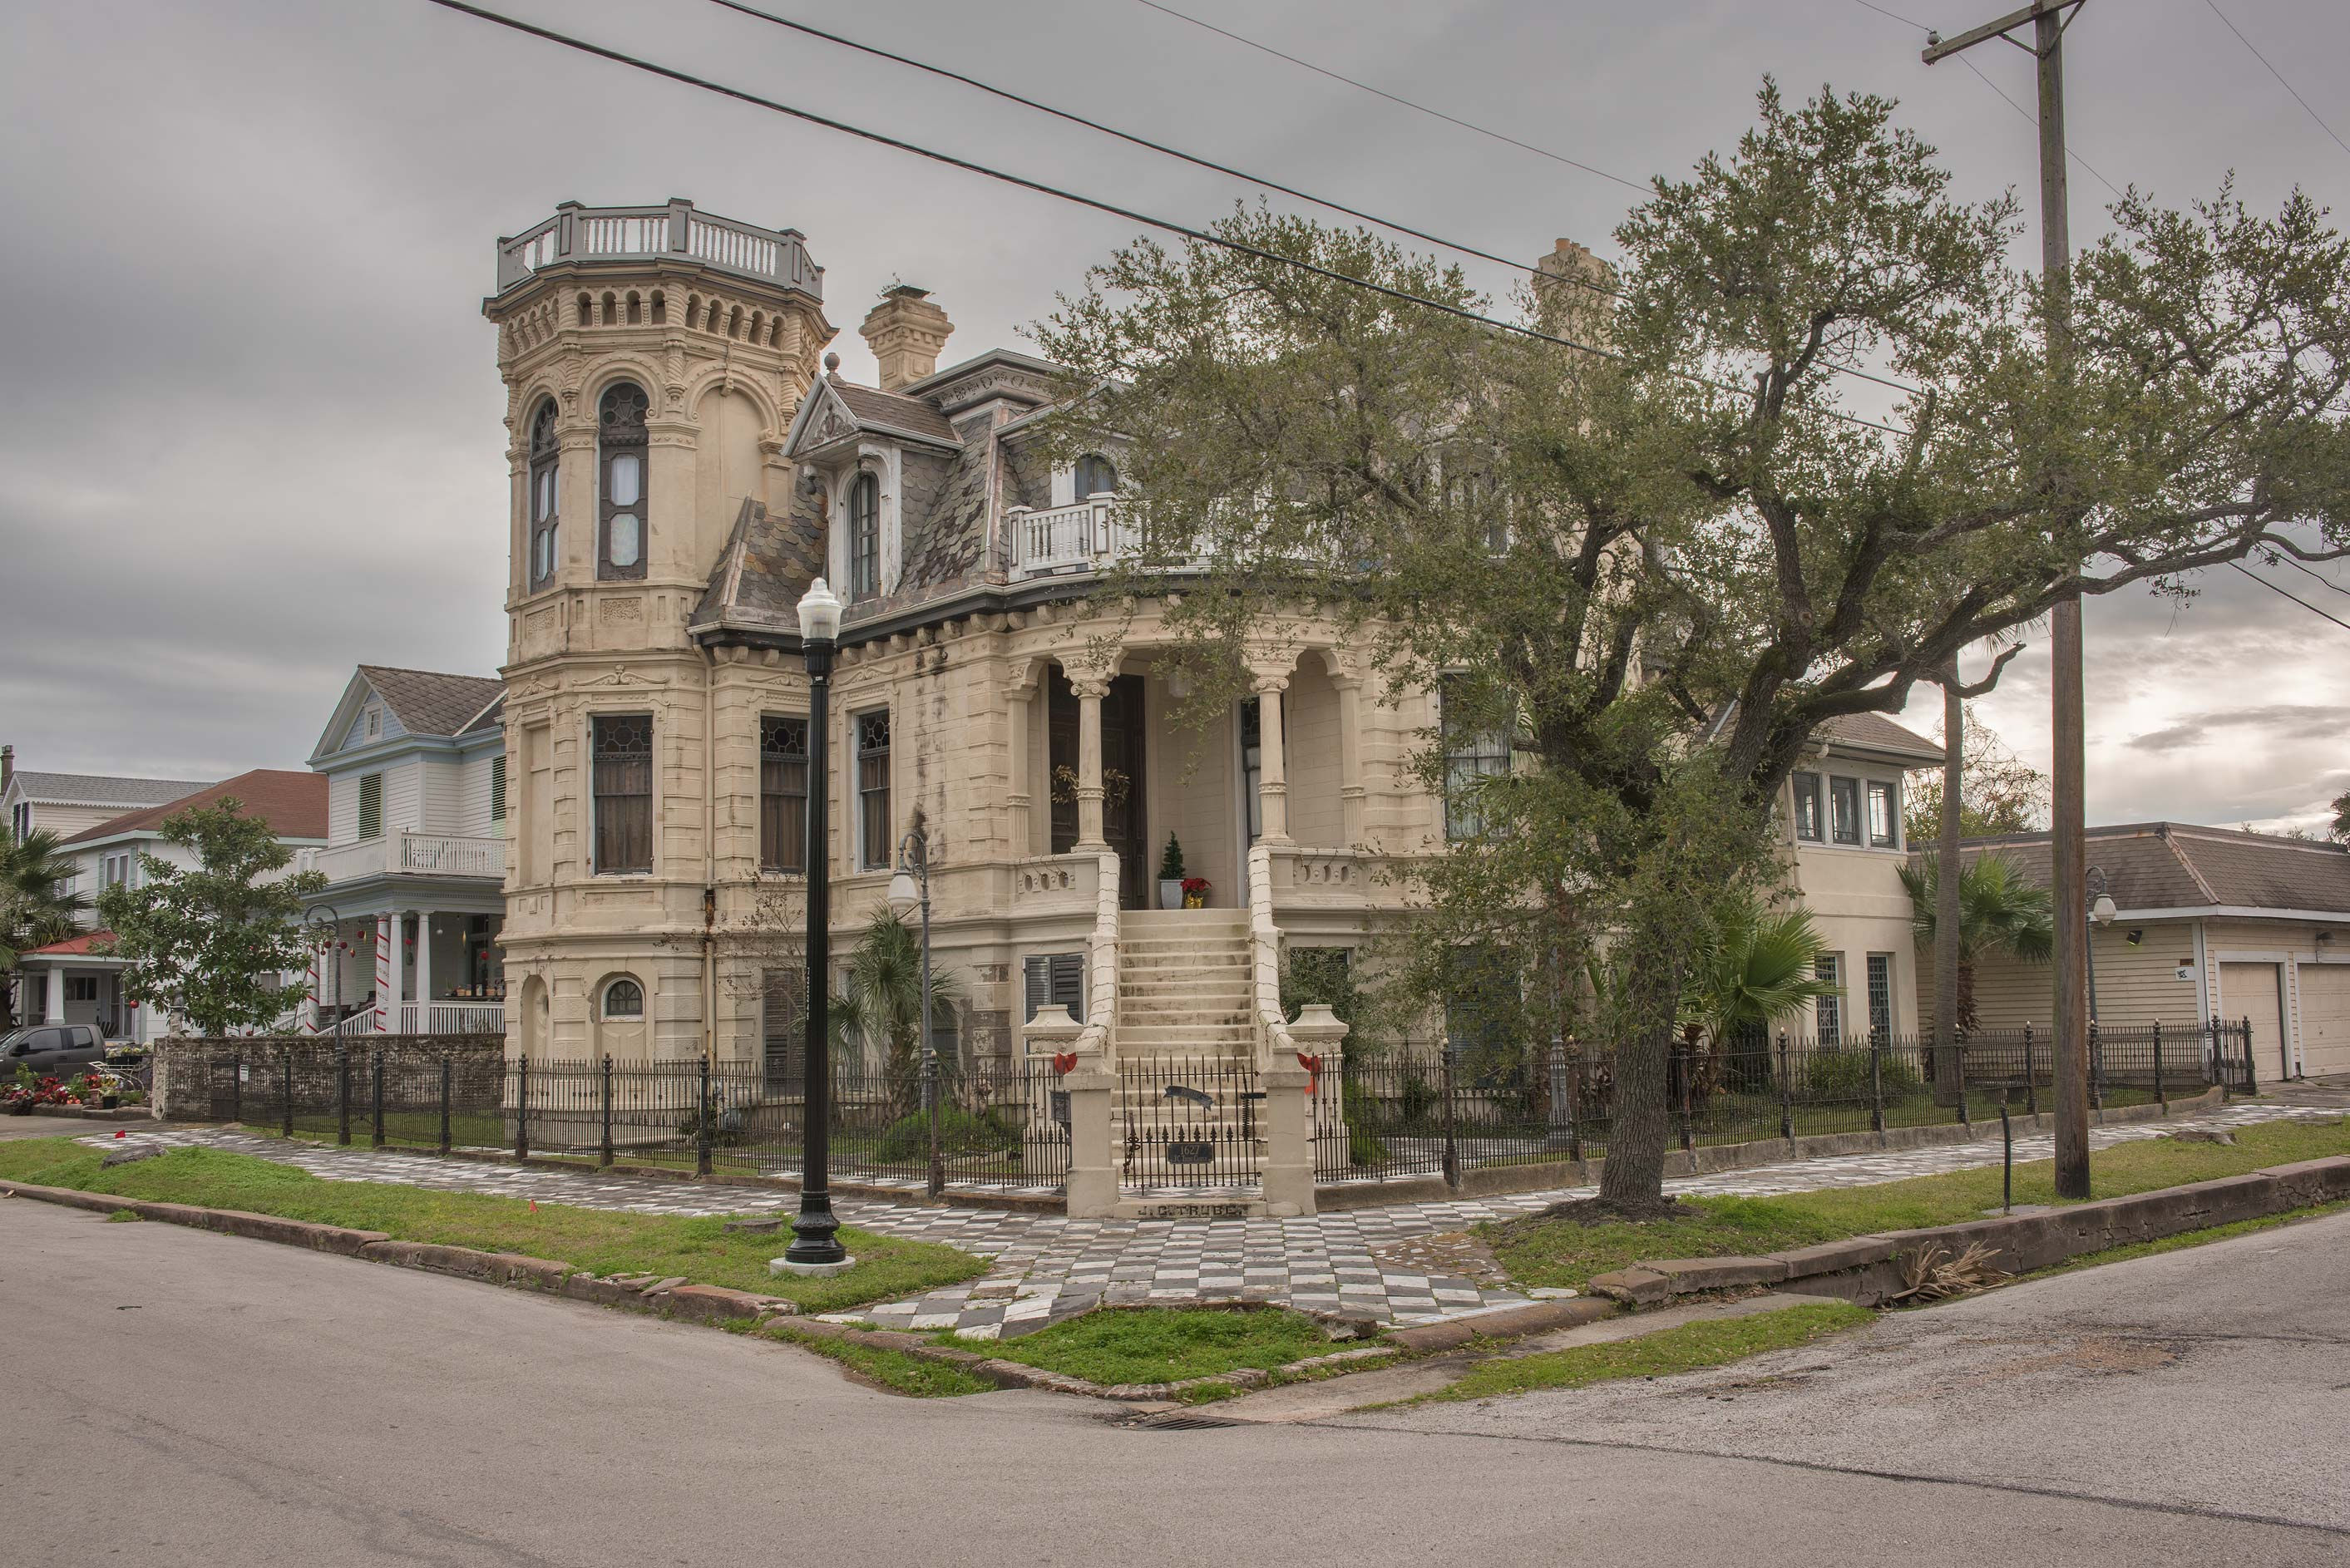 Trube Castle (1890) at 1627 Sealy St., a corner of 17th St. in Galveston. Texas